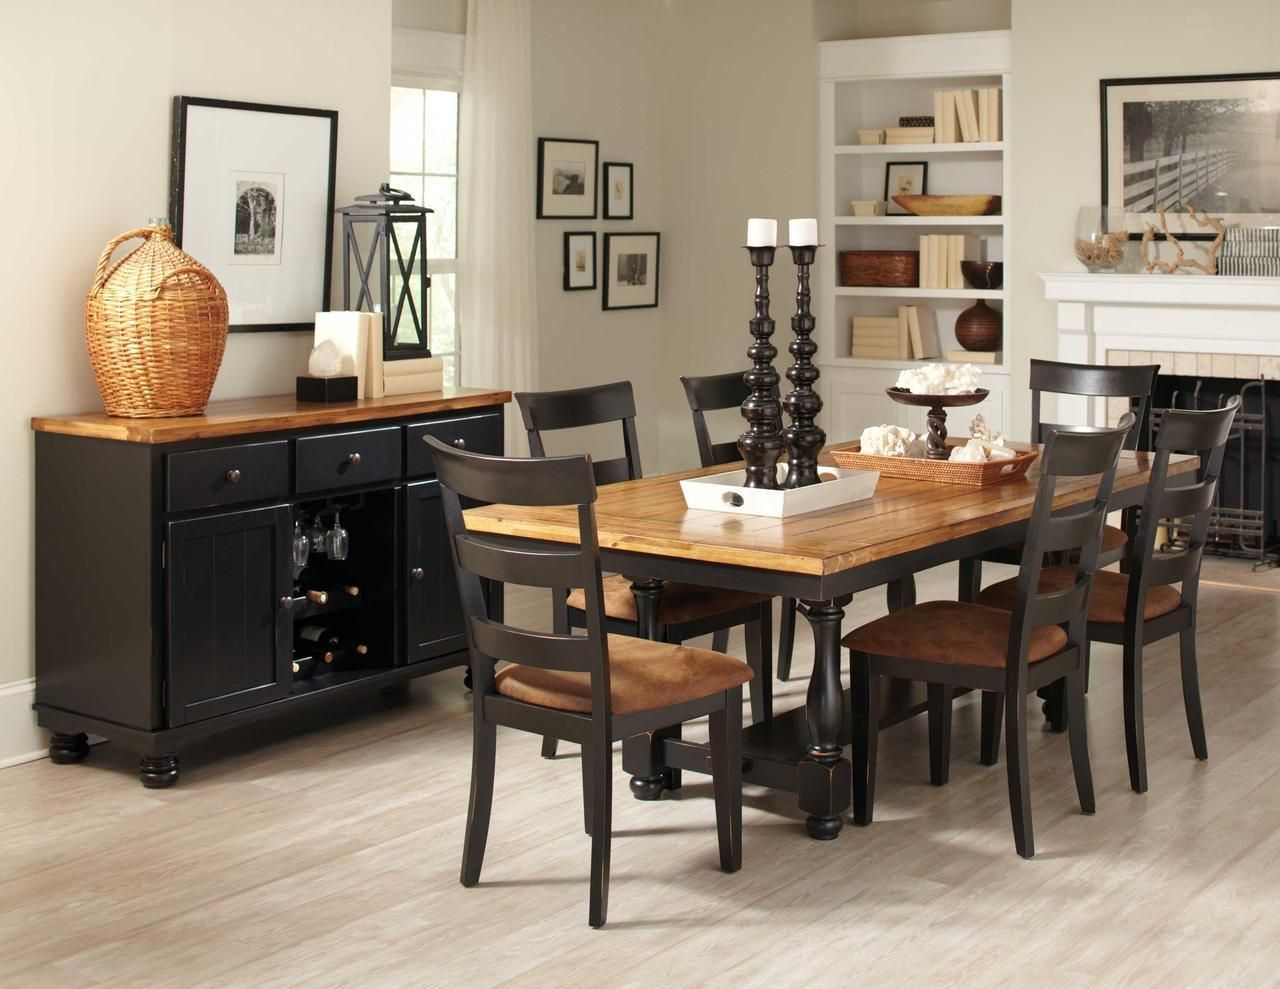 Marvella Rustic Amber Black Country Dining Table Set Country Dining Tables Country Style Dining Room Country Kitchen Tables